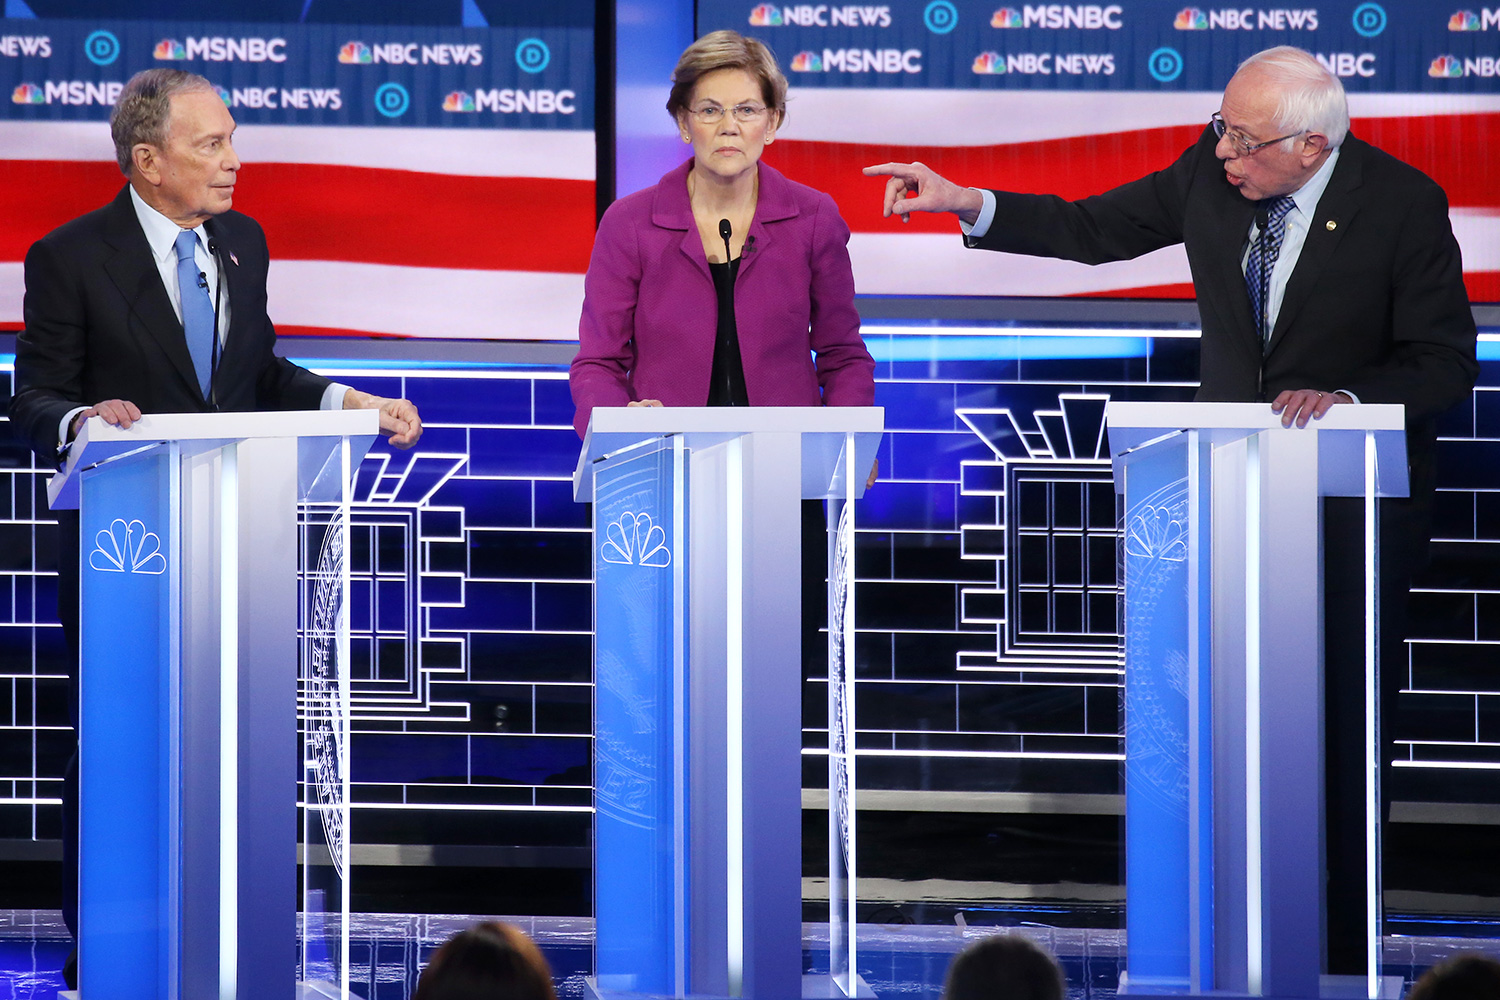 Democratic presidential candidate Sen. Bernie Sanders (I-VT) (R) gestures as Sen. Elizabeth Warren (D-MA) and former New York City mayor Mike Bloomberg listen during the Democratic presidential primary debate at Paris Las Vegas on February 19, 2020 in Las Vegas